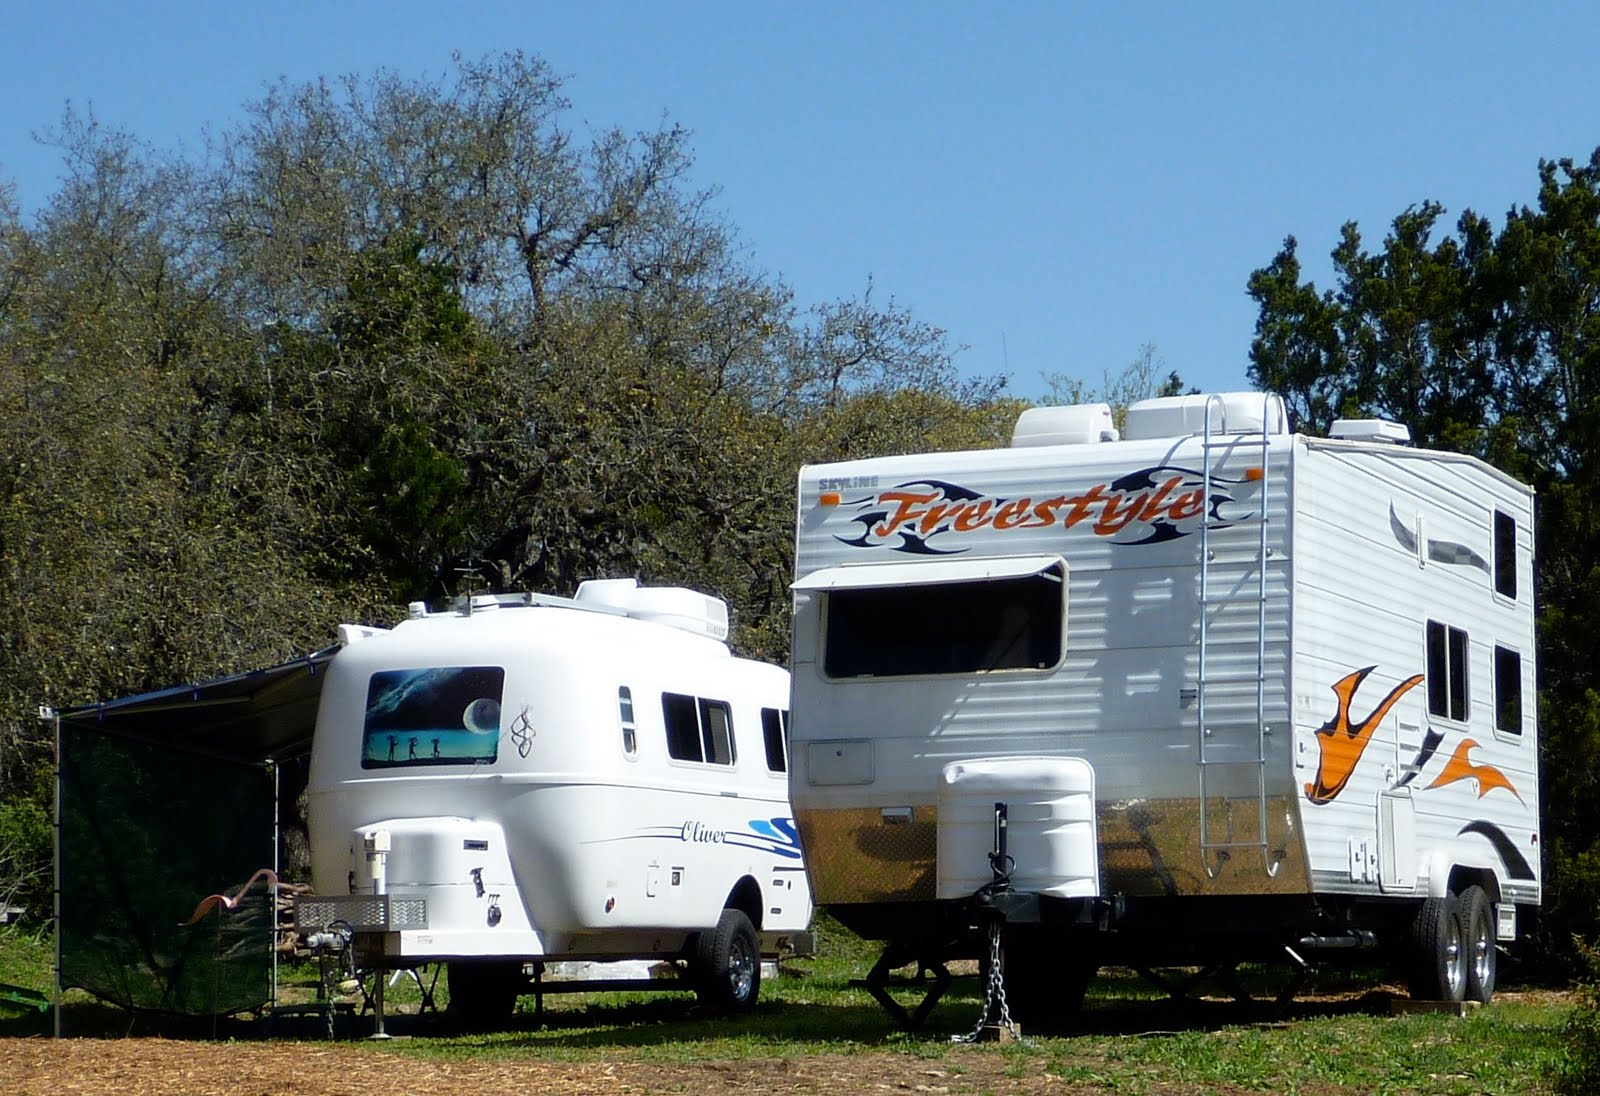 Pete and the Wonder Egg: Ricegrass Festival & Vintage Trailers